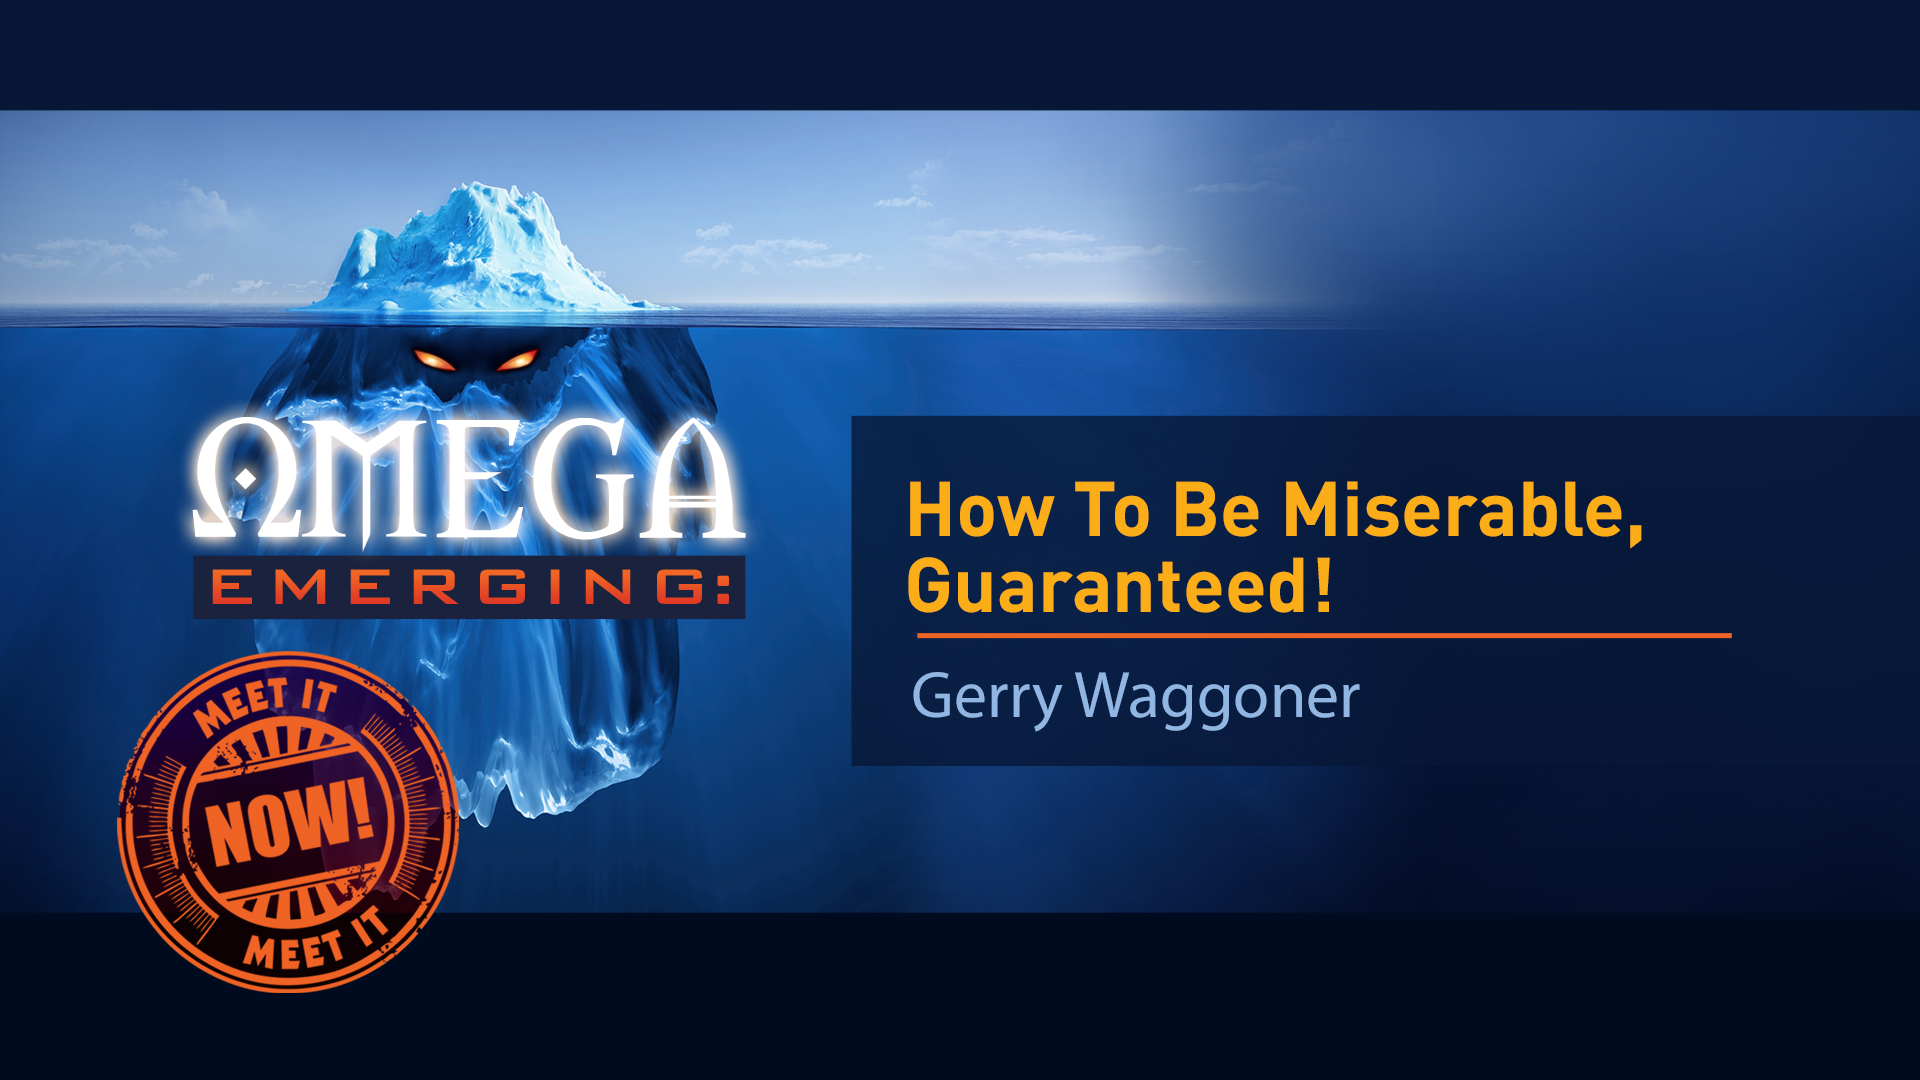 4. How To Be Miserable, Guaranteed - Gerry Waggoner